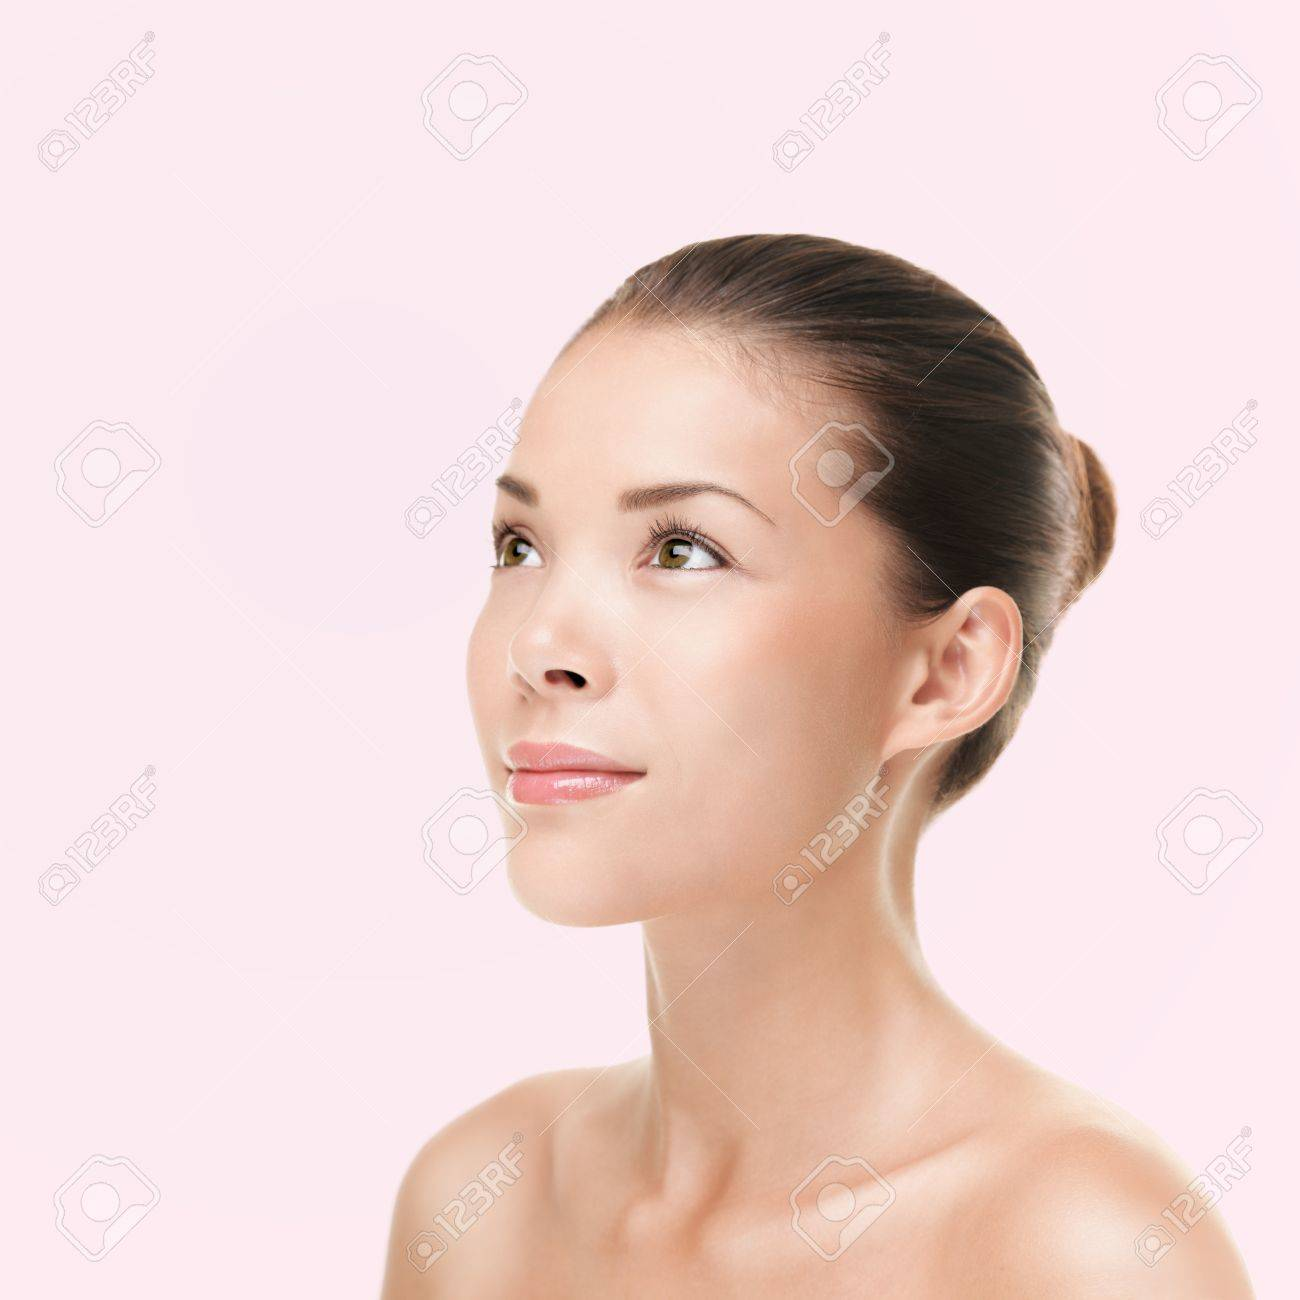 Multiracial ethnic Asian and Caucasian female beauty model looking to the side and up on bright pink background. Standard-Bild - 16663400